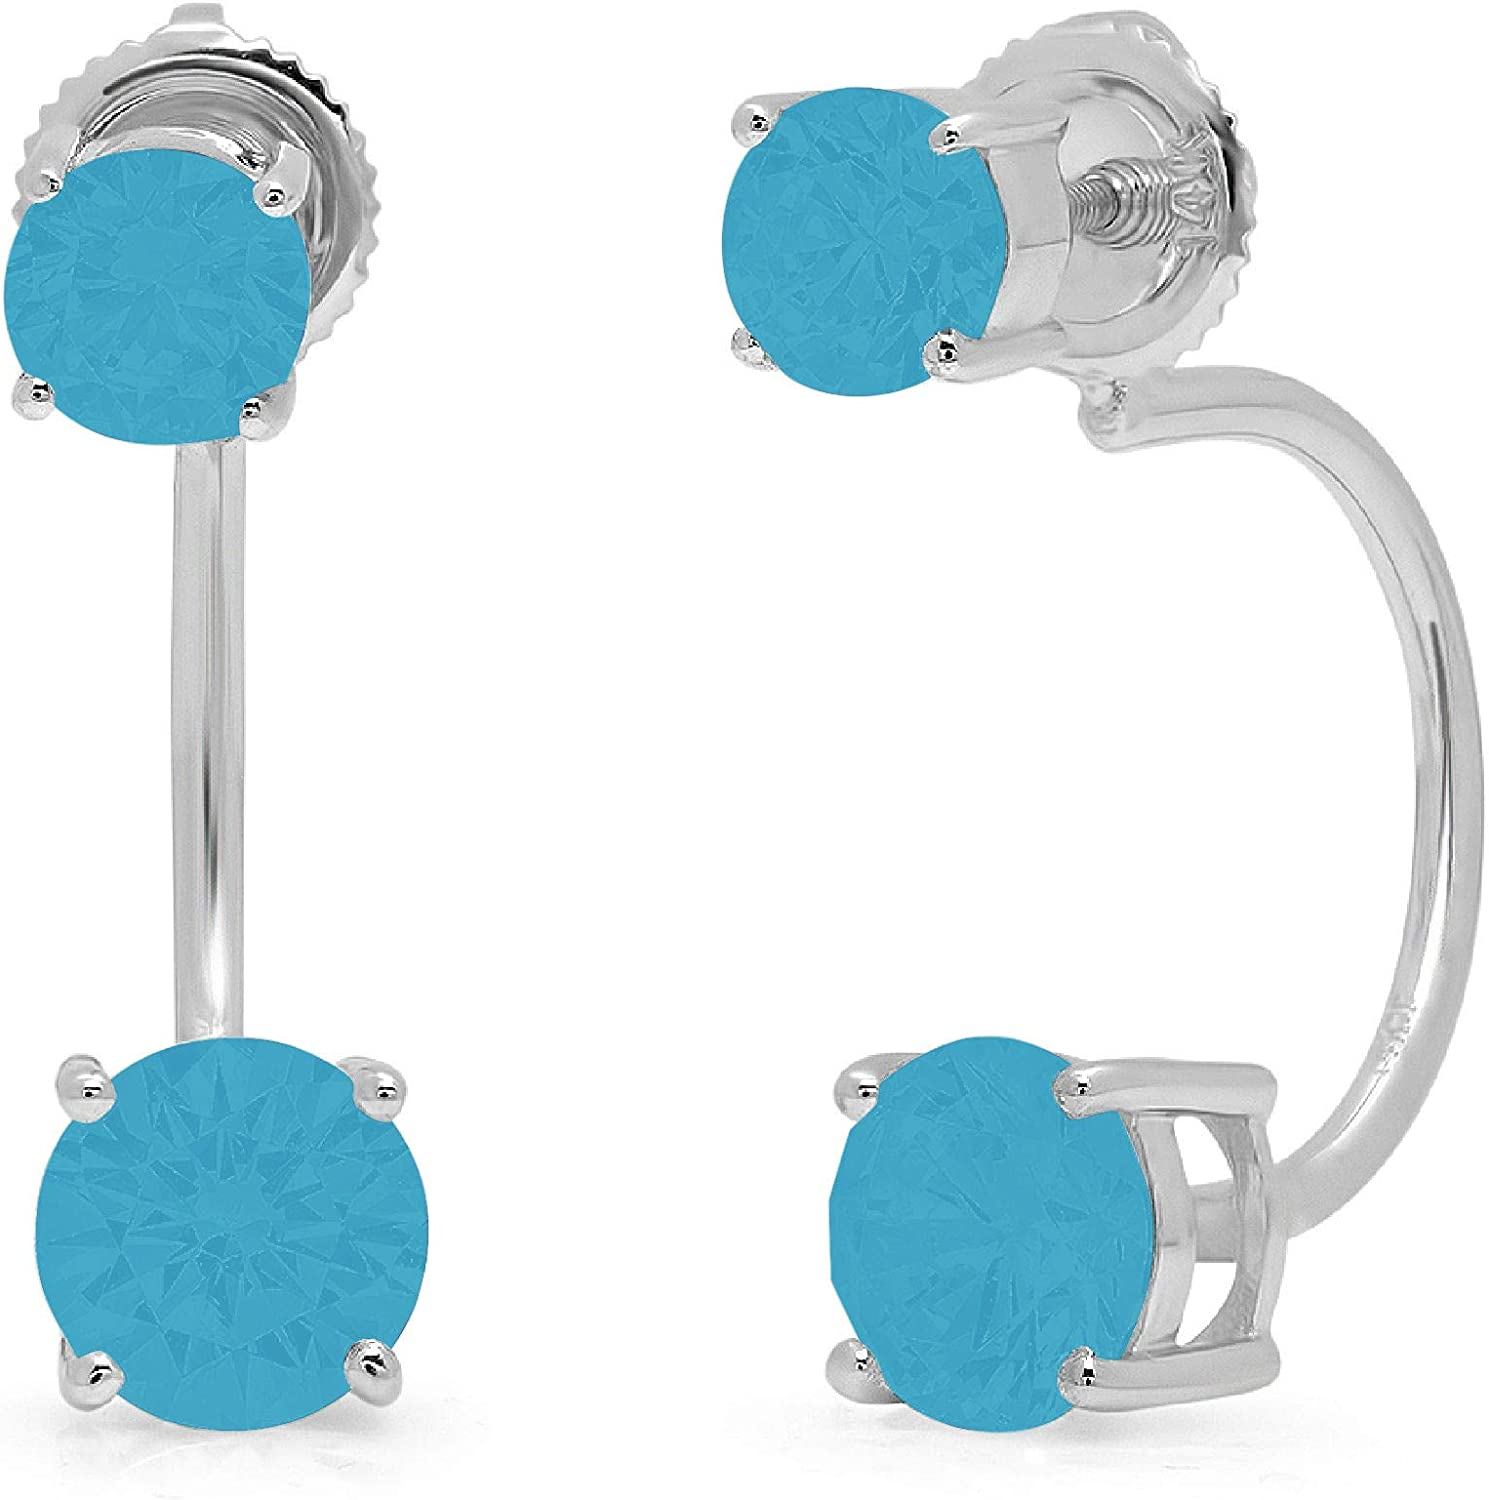 Clara Pucci 3.20 CT Dual Double Drop 2 stone Brilliant Round Cut Solitaire Genuine VVS1 Flawless Simulated Turquoise Gemstone Pair of Lever back Drop Dangle Earrings Solid 18K White Gold